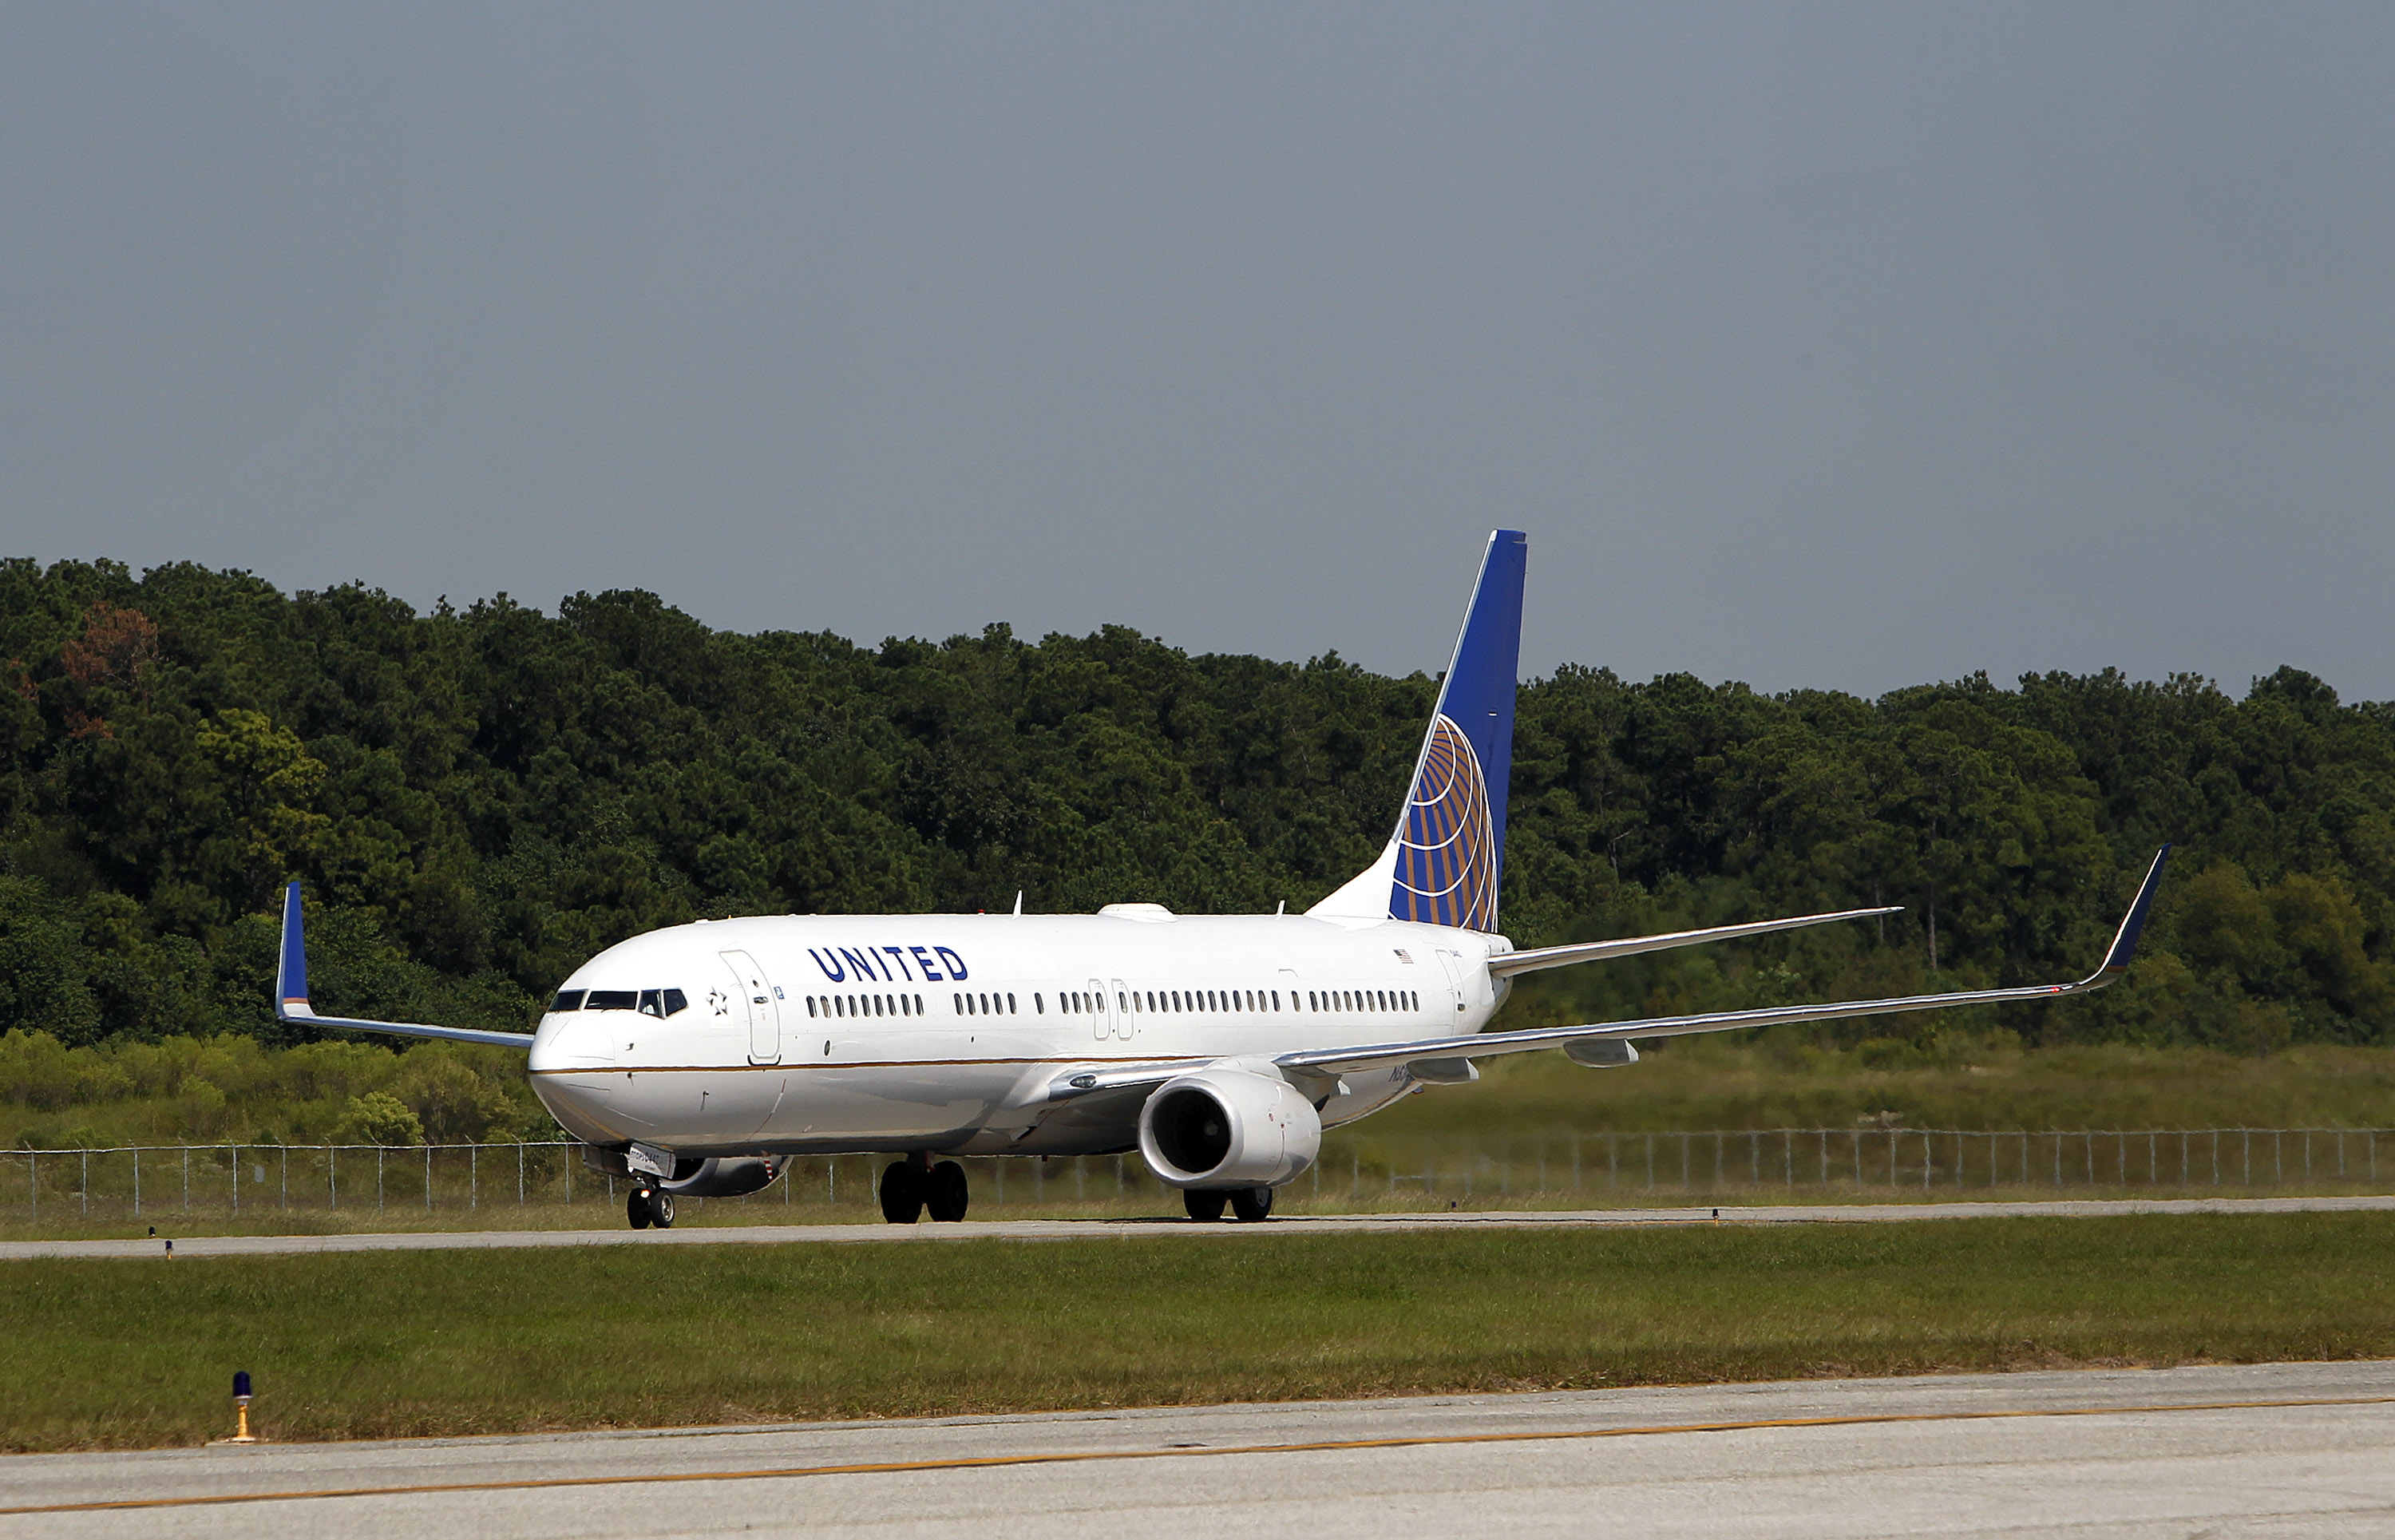 A Boeing Co. 737-924 extended range jet (N53442) bearing United Airlines livery and the Continental Airlines logo at George Bush Intercontinental Airport in Houston, Texas, U.S., on Oct. 1, 2010.